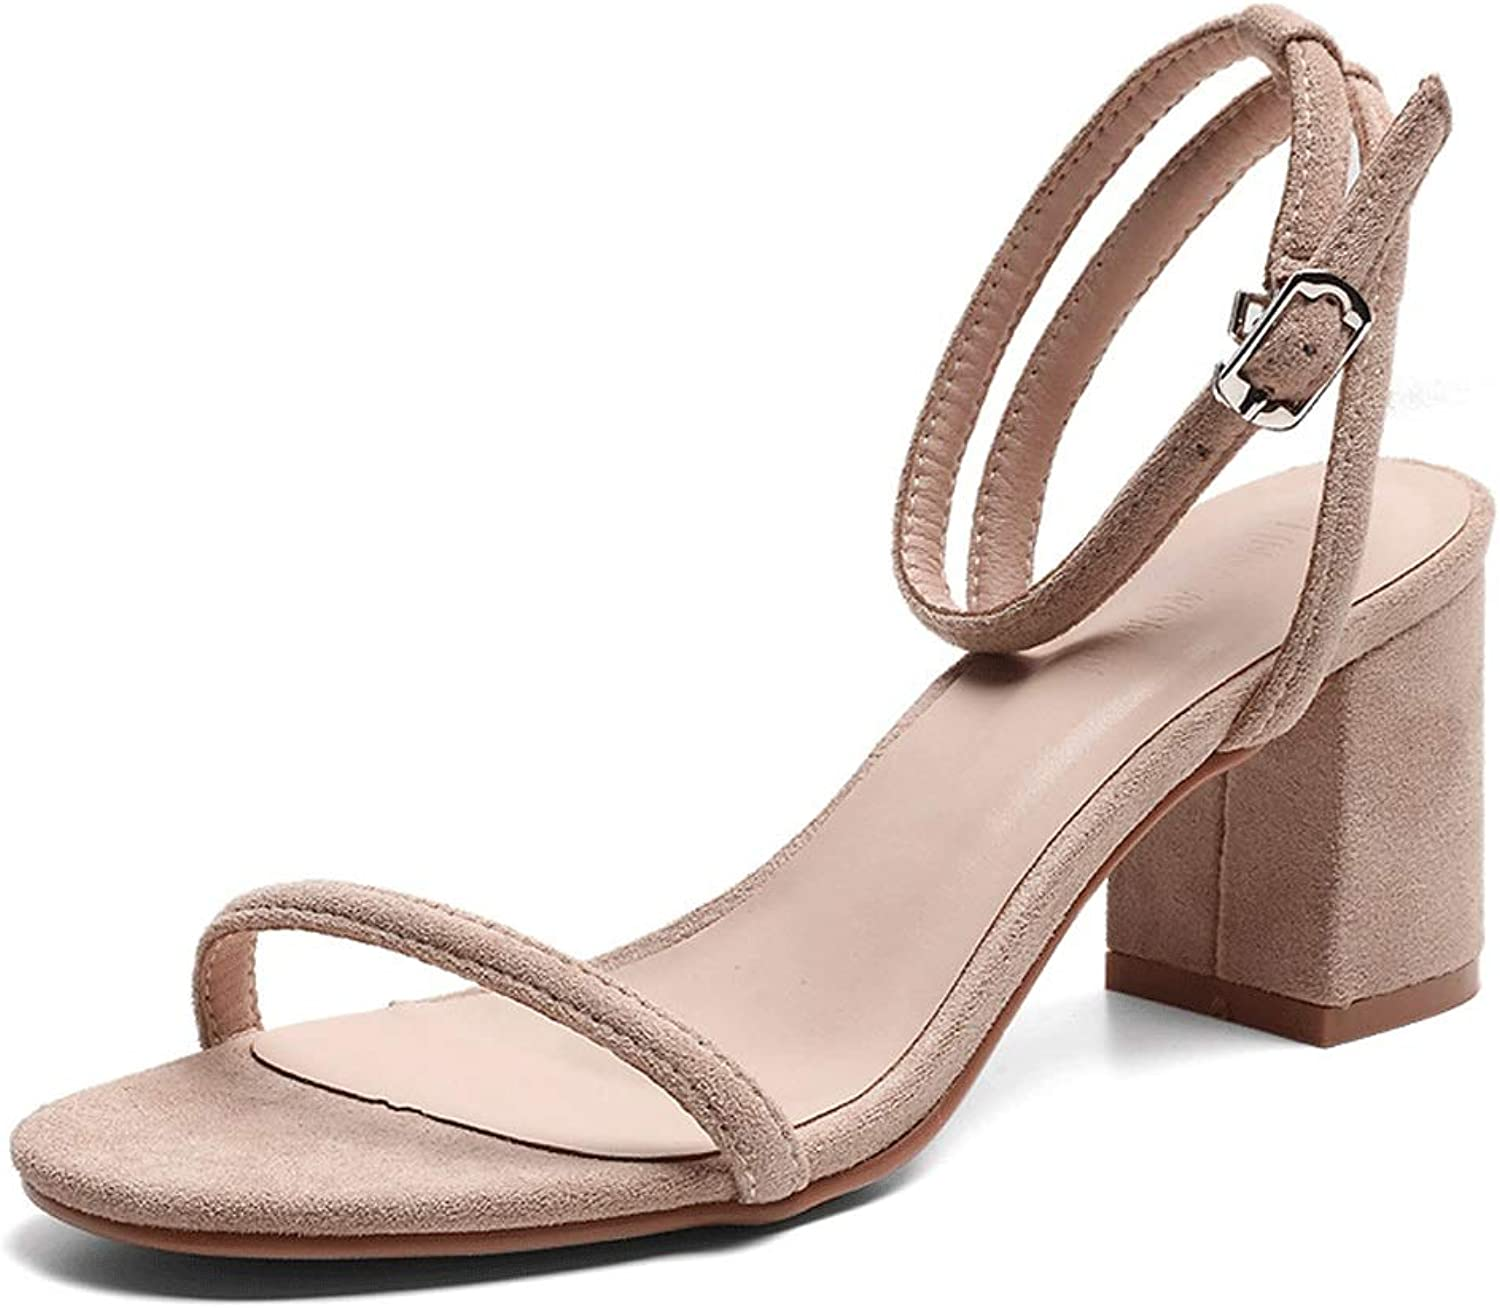 Summer Thick Heels High Heels Fashion Sandals Comfortable Women's shoes (color   A, Size   7.0 US)